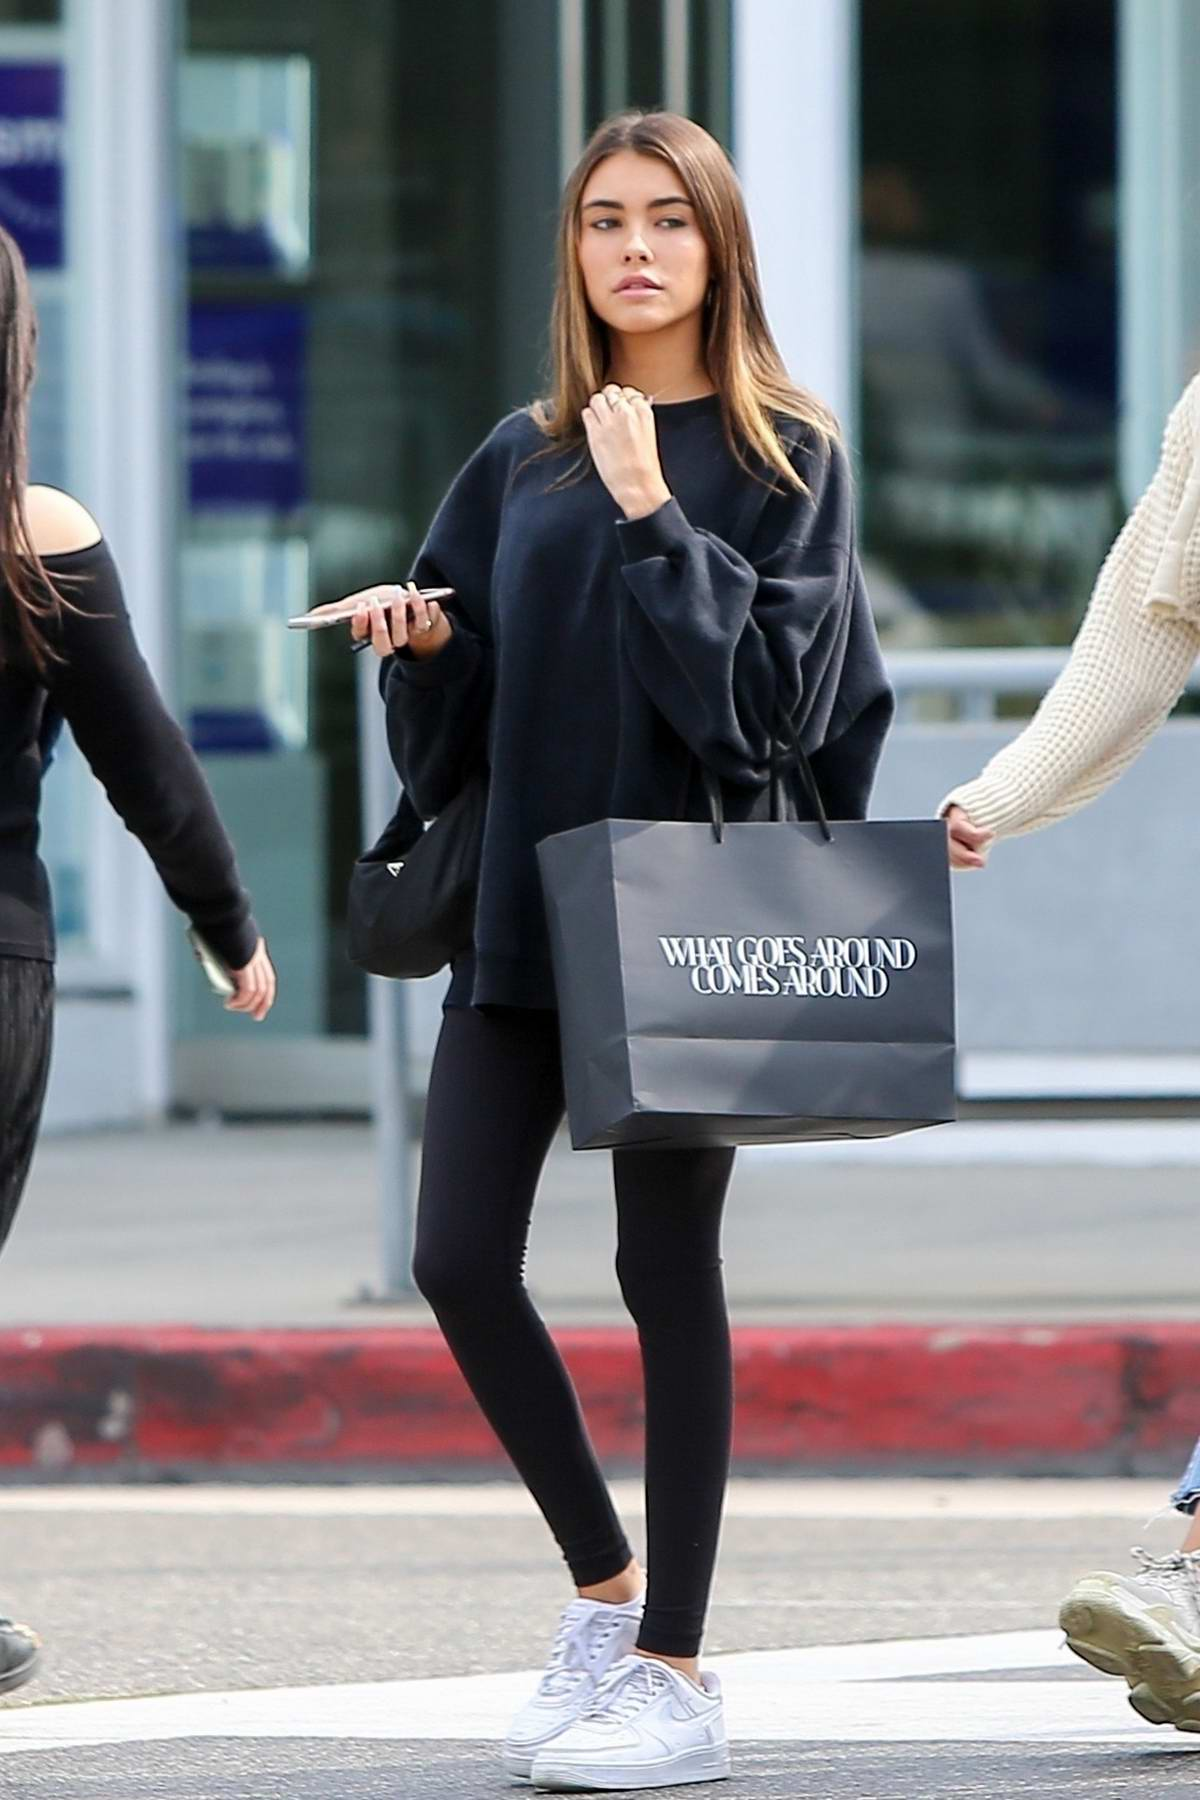 Madison Beer wears a black Nike sweatshirt and leggings while out shopping with friends in Beverly Hills, Los Angeles